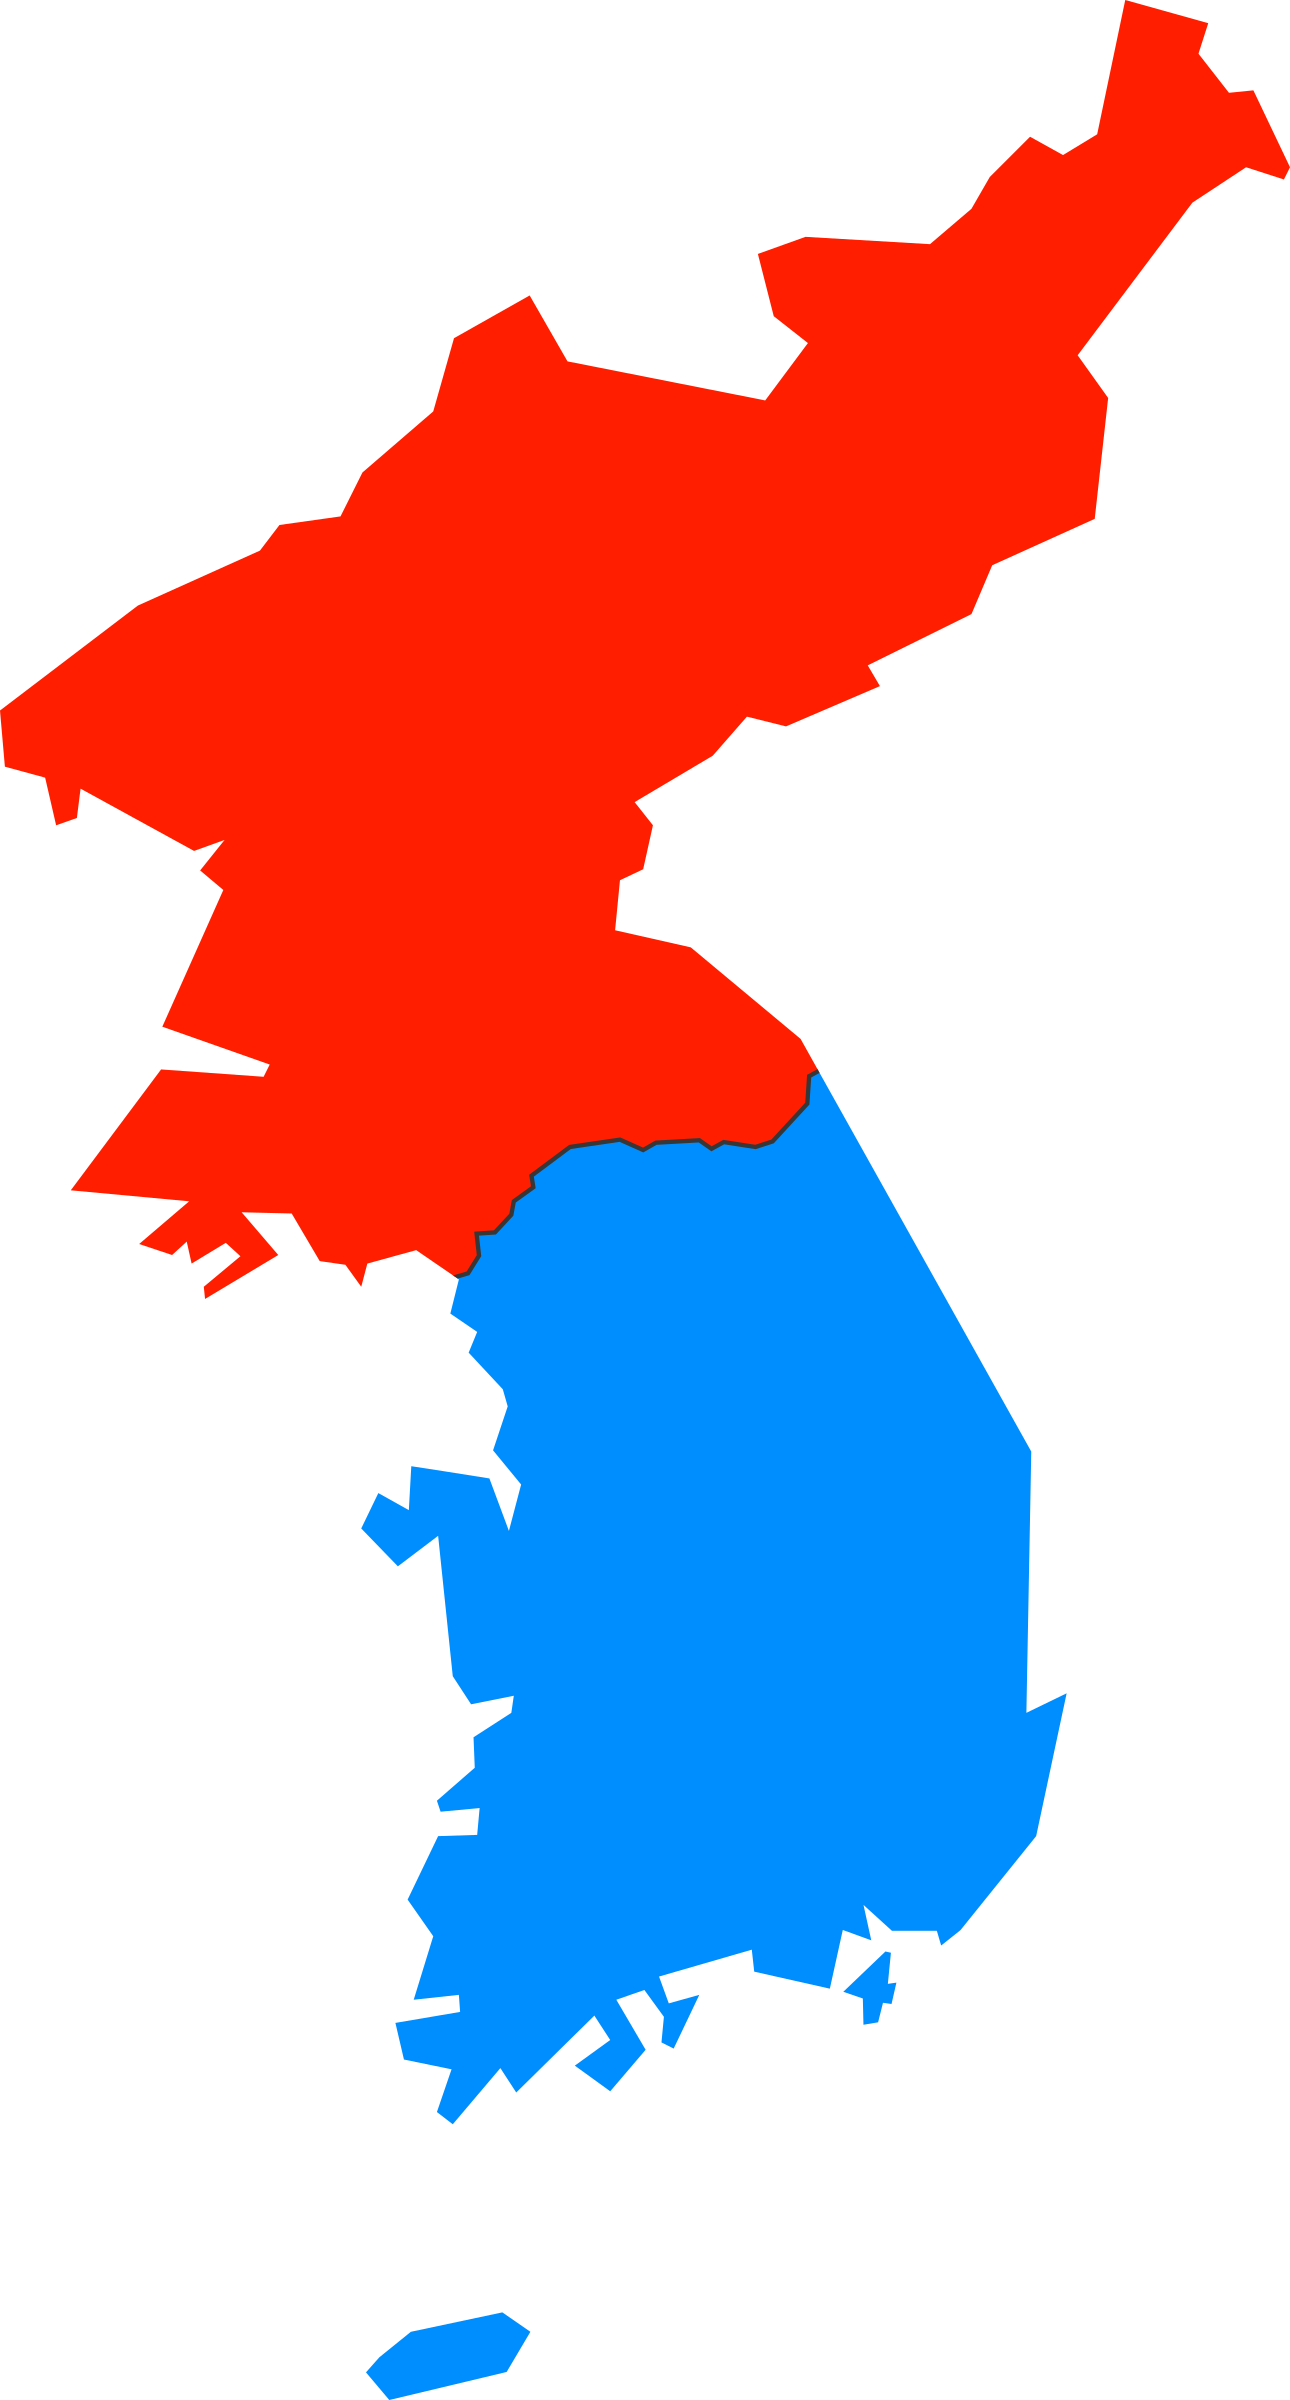 North and South Korea Simple Map by qubodup